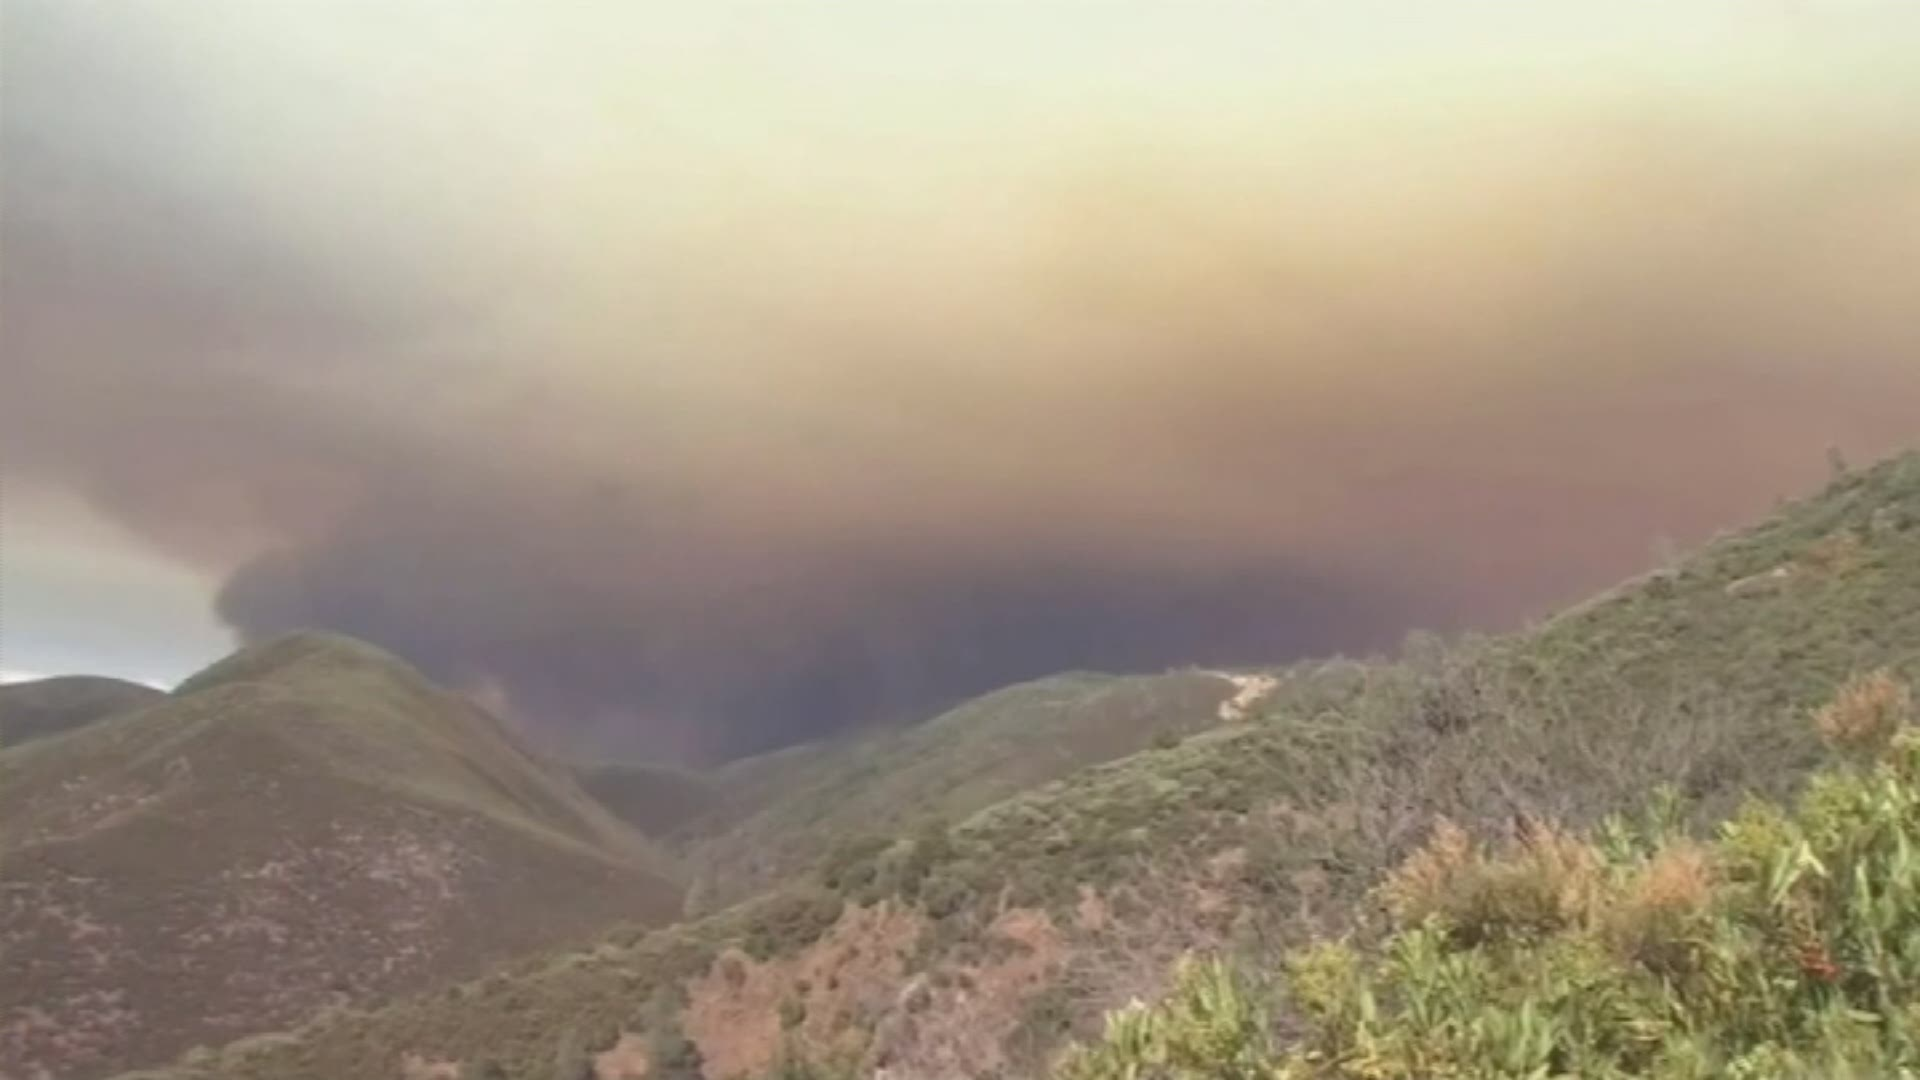 Un incendie menace le parc national de Yosemite en Californie